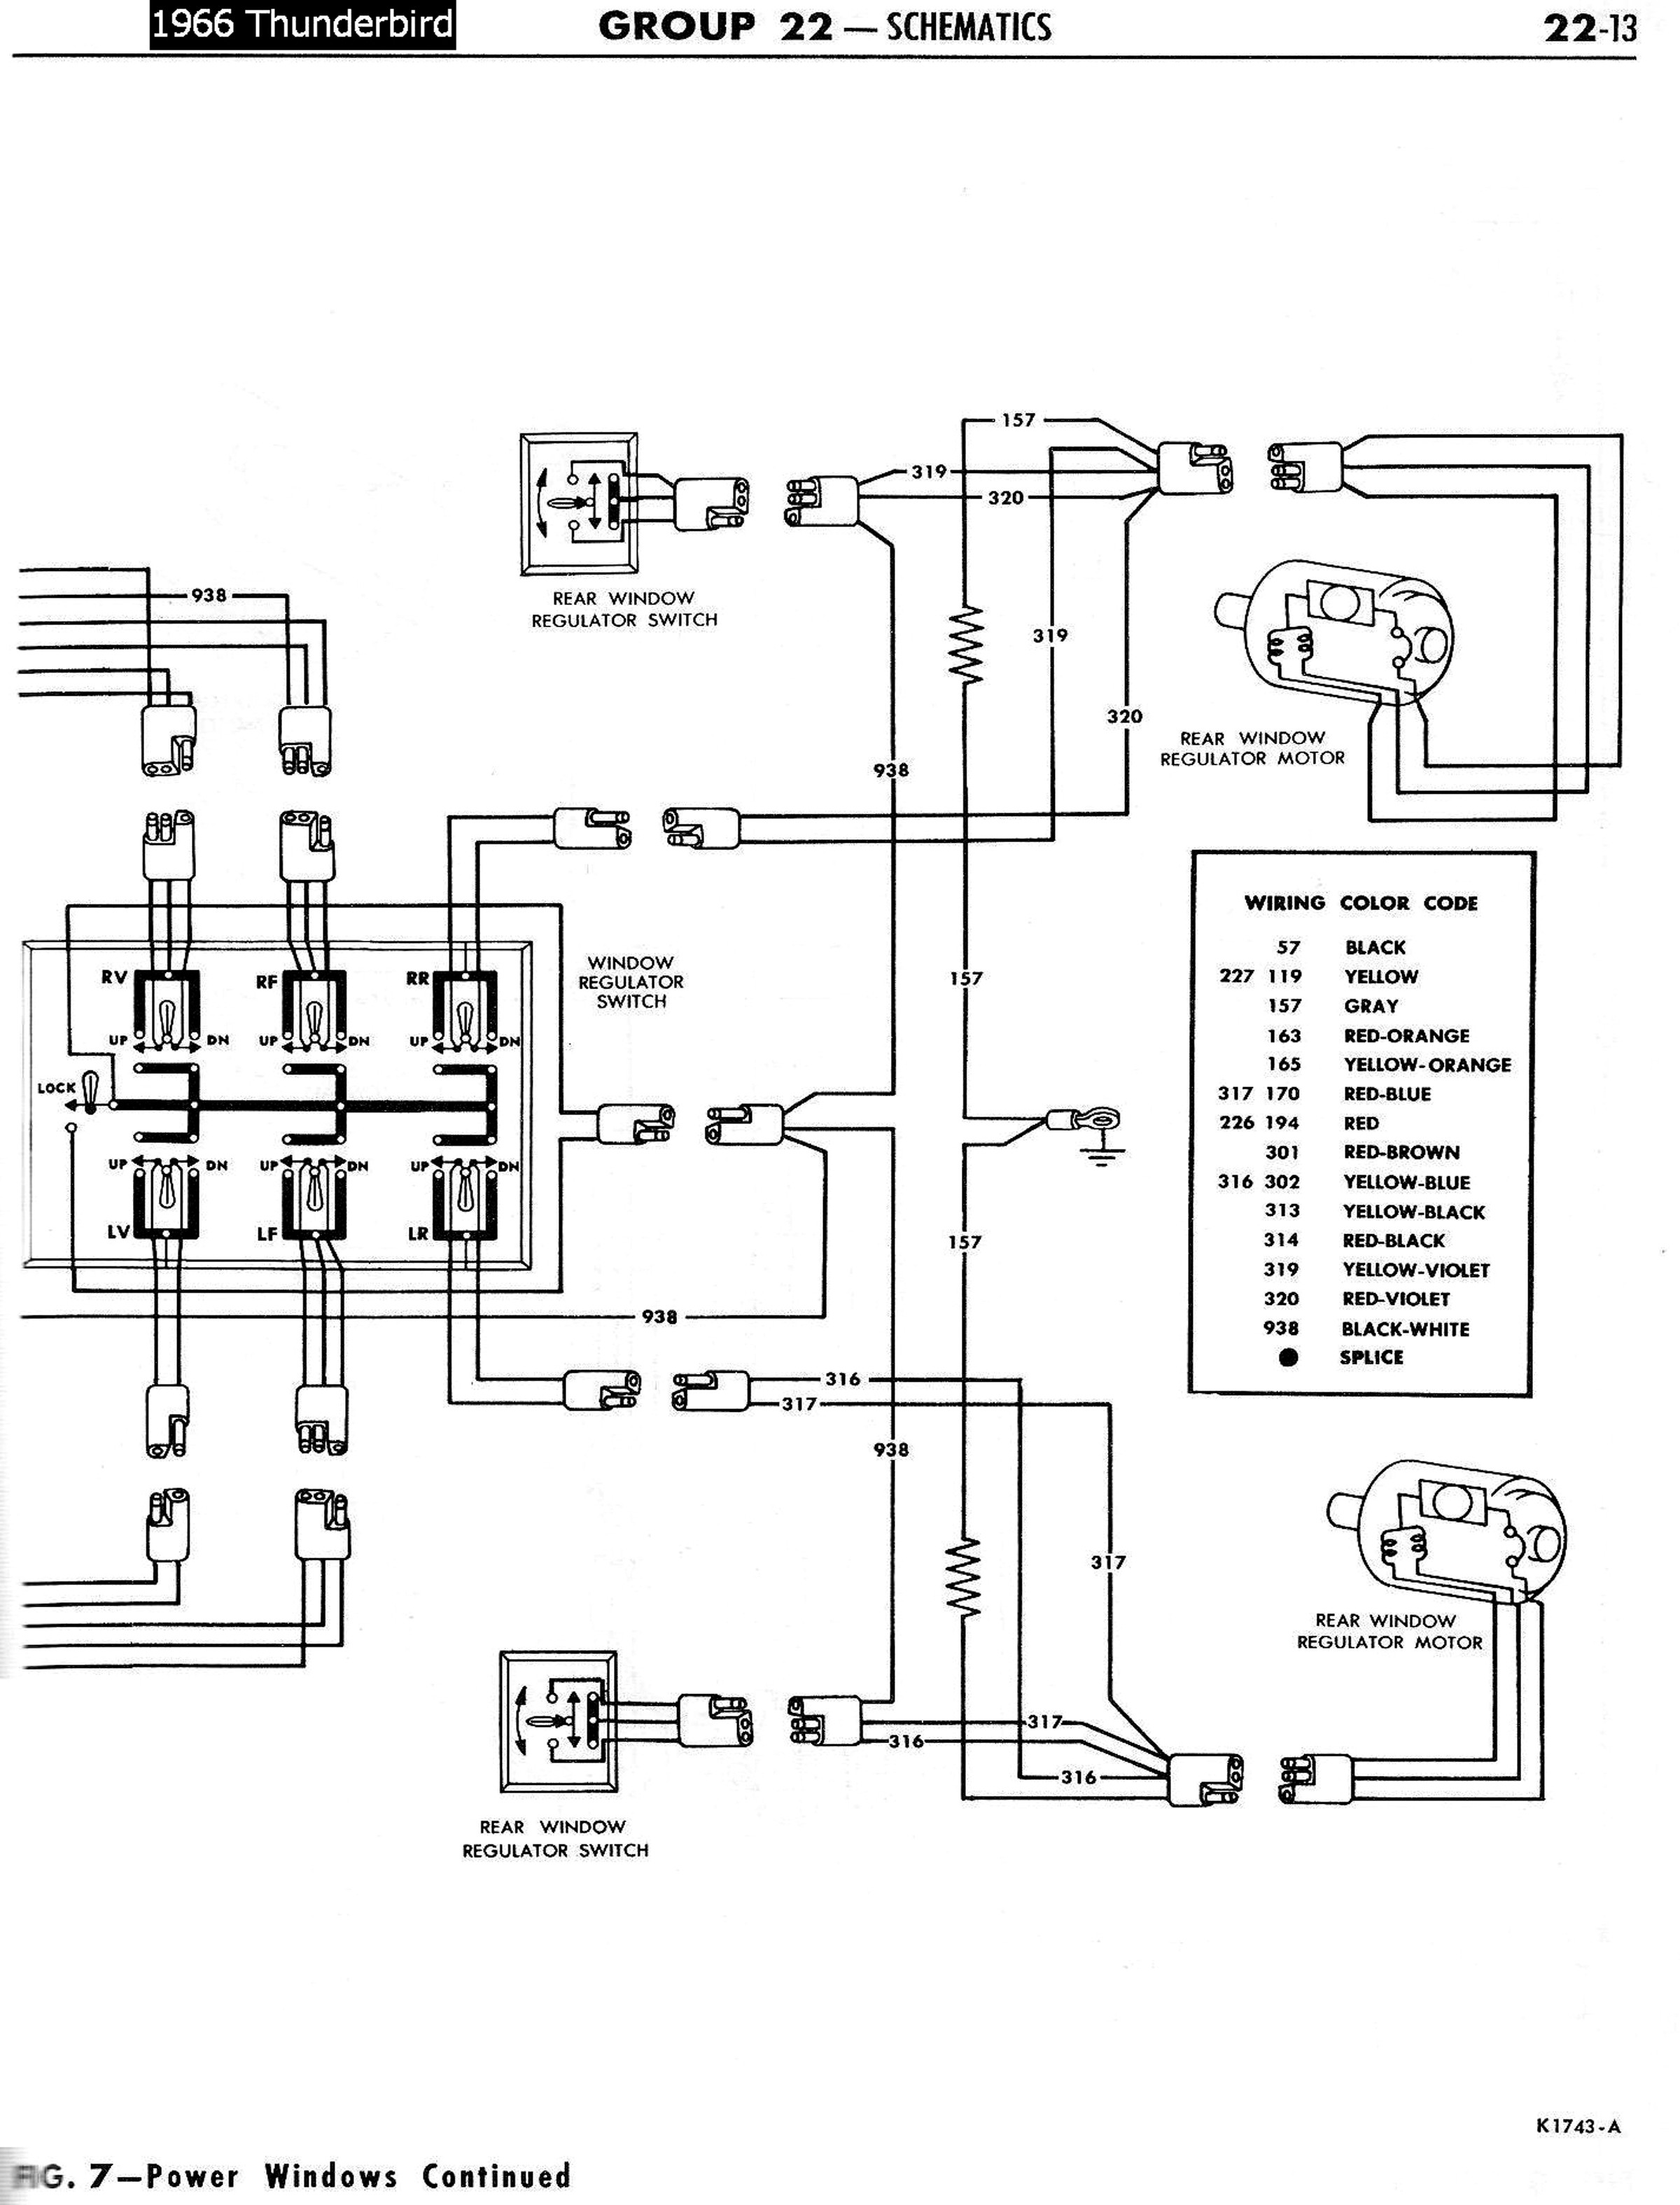 Abus Cranes Usa Wiring Diagram